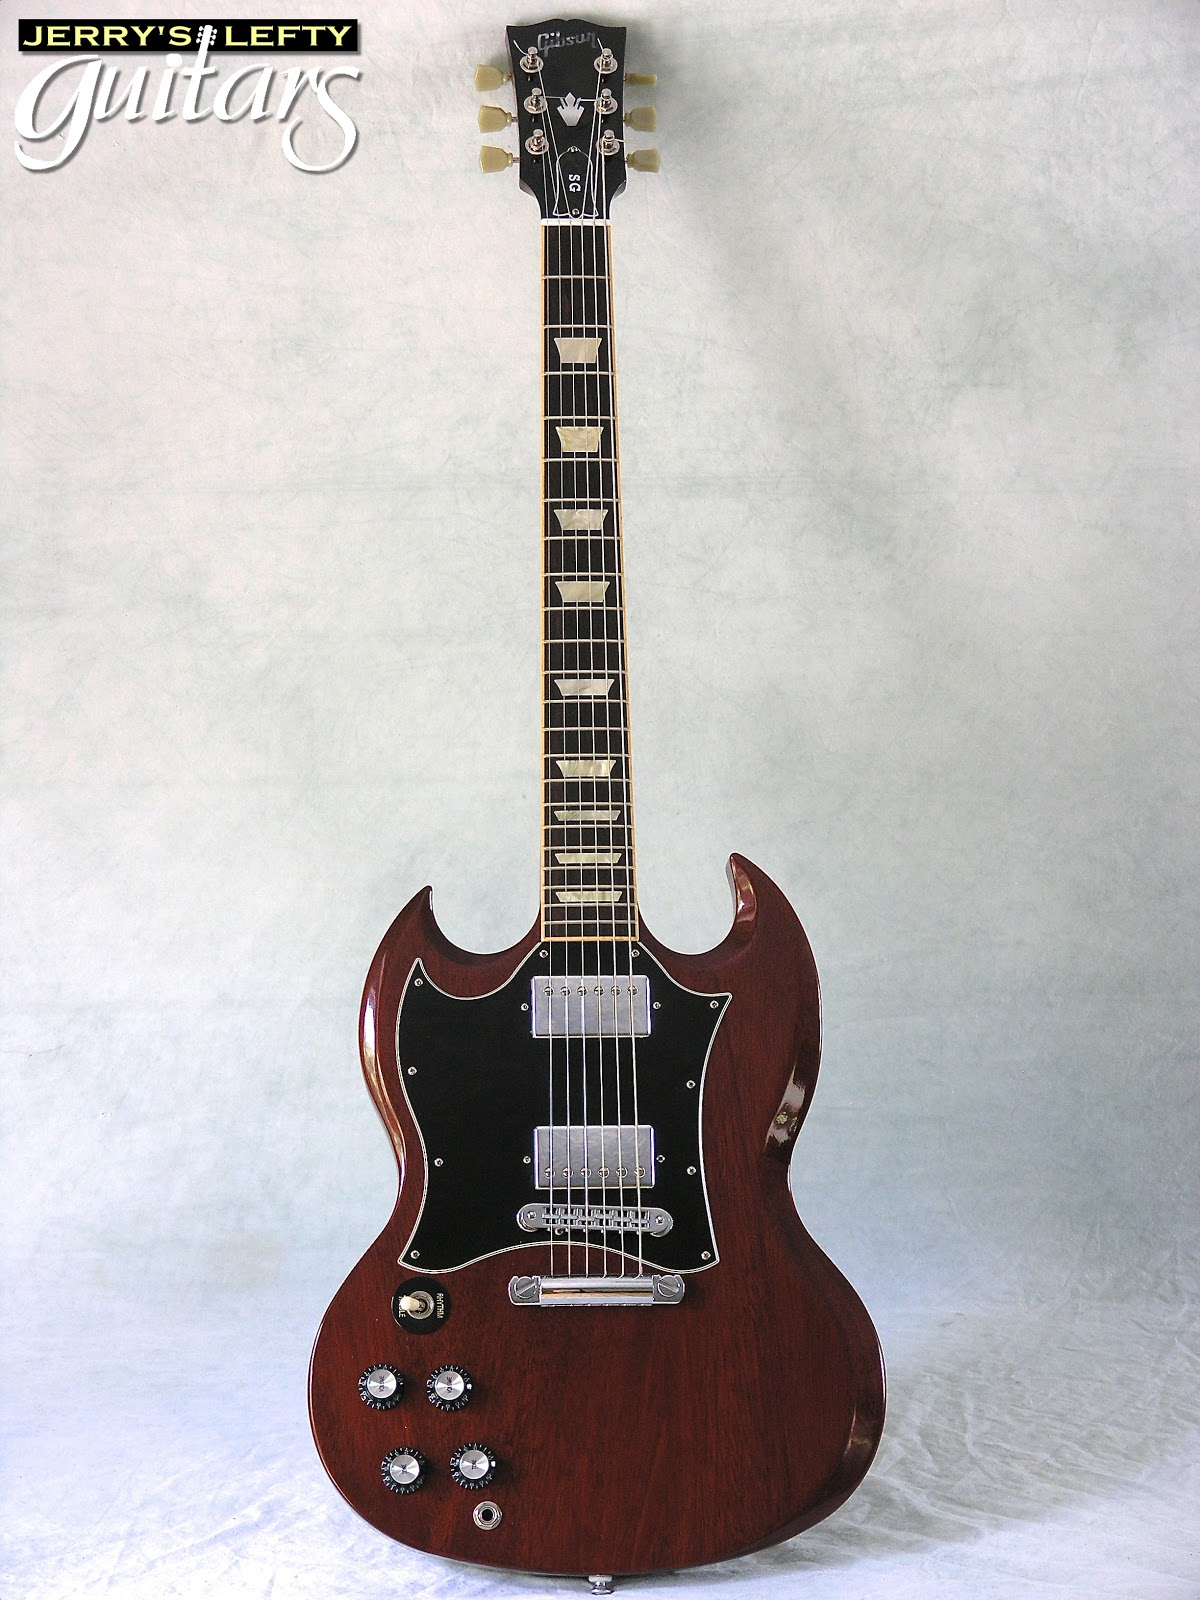 jerry 39 s lefty guitars newest guitar arrivals updated weekly 2007 gibson sg standard used left. Black Bedroom Furniture Sets. Home Design Ideas